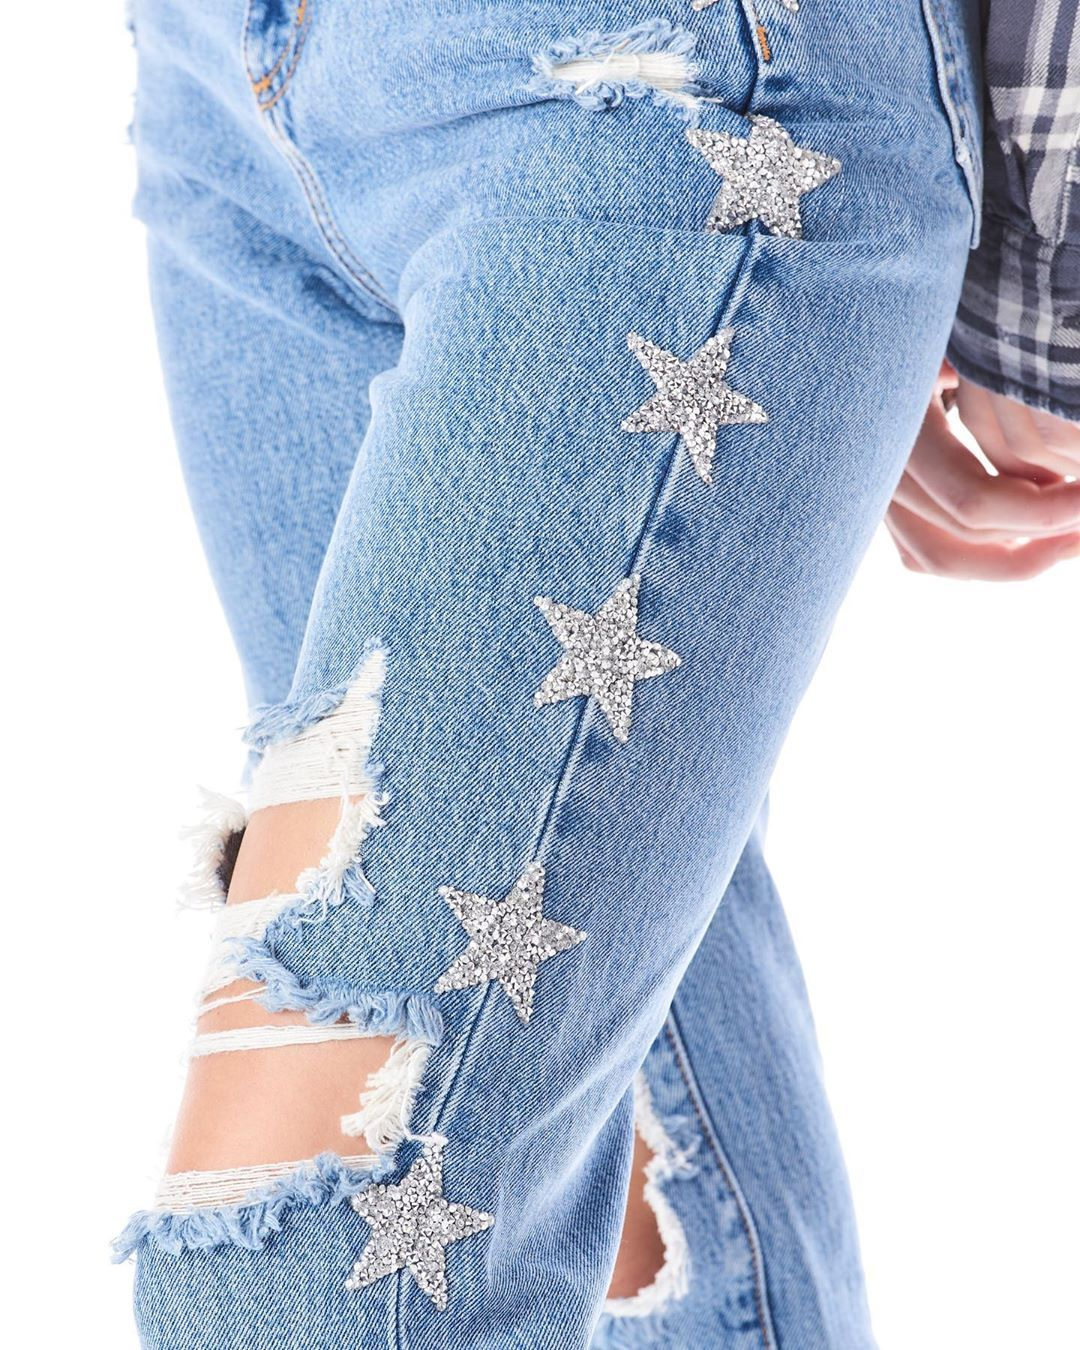 Carmar Denim On Instagram Zoom In On The Hermia Sabella Carmarseasonalsale 70 Off The Entire Site Shop Online At Www Star Jeans Carmar Rhinestone Jeans